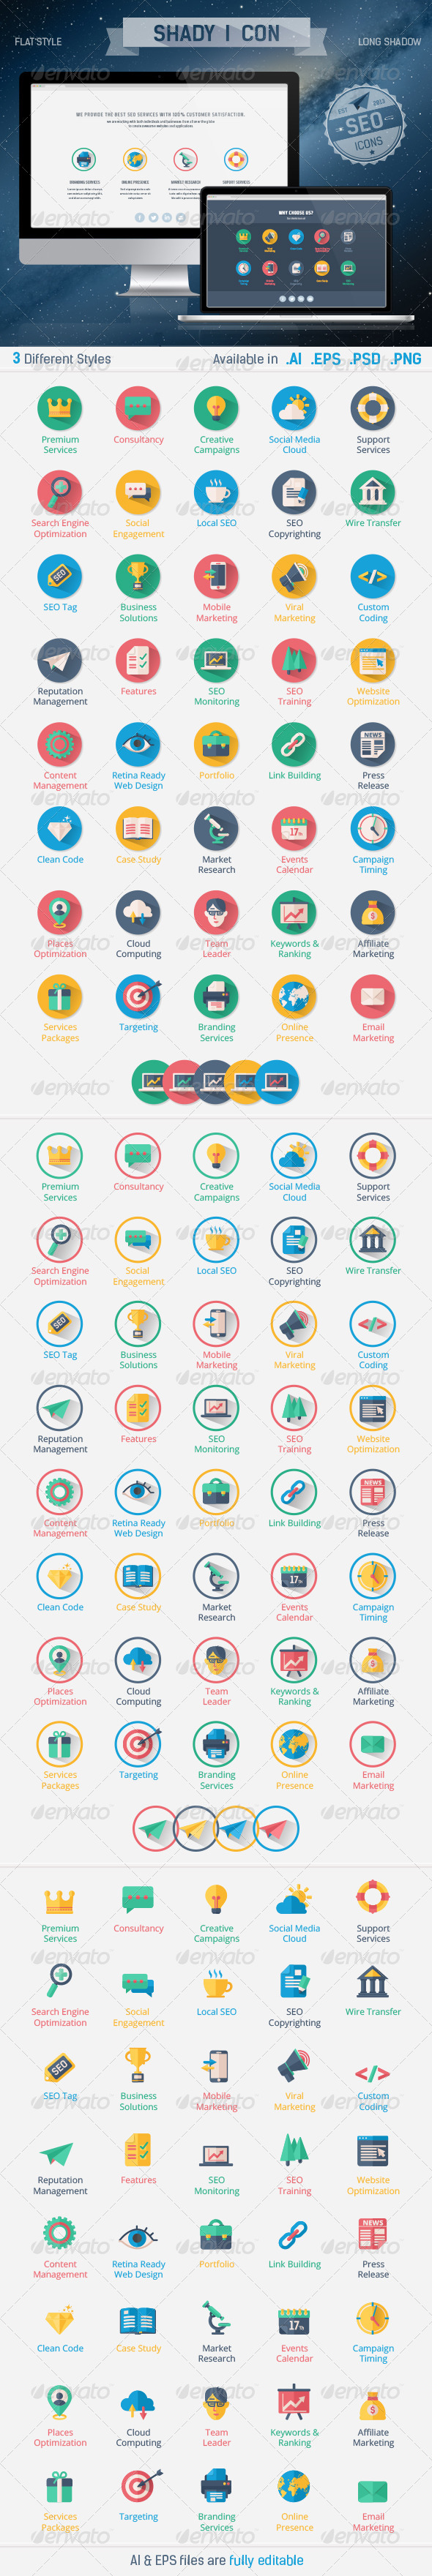 GraphicRiver Shady I Con Seo Flat & Long Shadow Icons 5903410